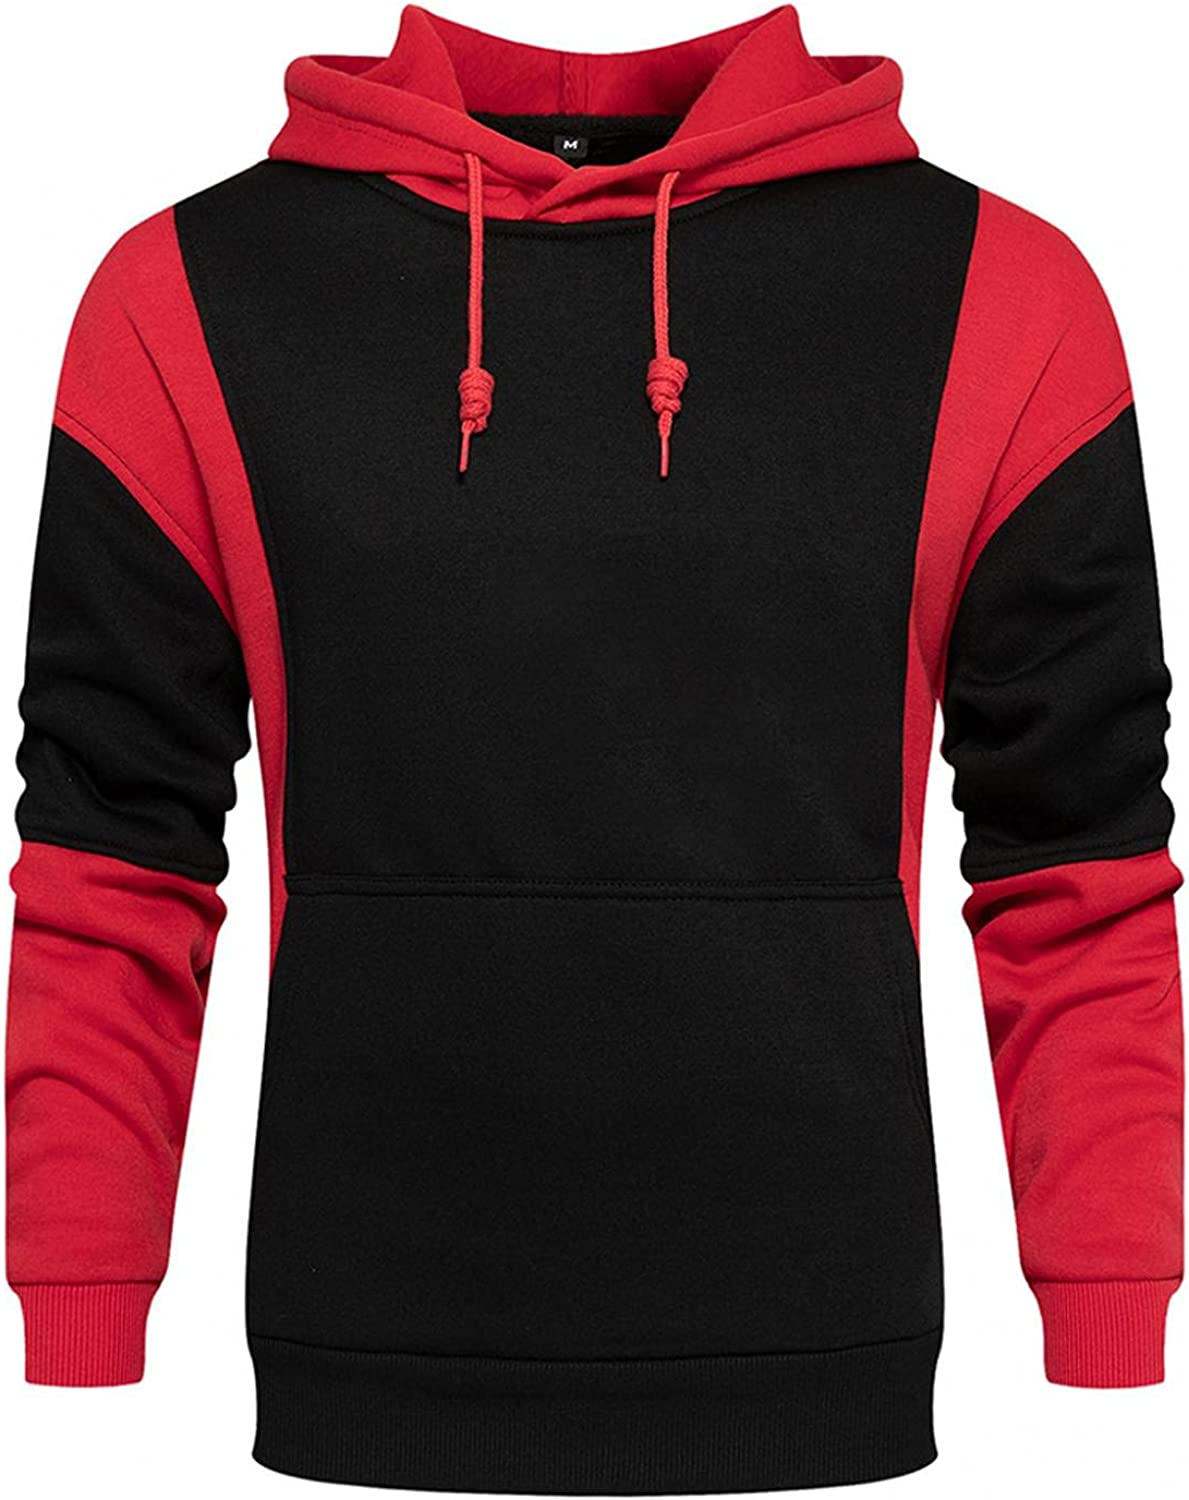 Mens Tops Men's Hipster Hip Hop Hoodie Button Down Colorblock Tshirt Casual Long Sleeve Warm Sweatshirts with Pockets